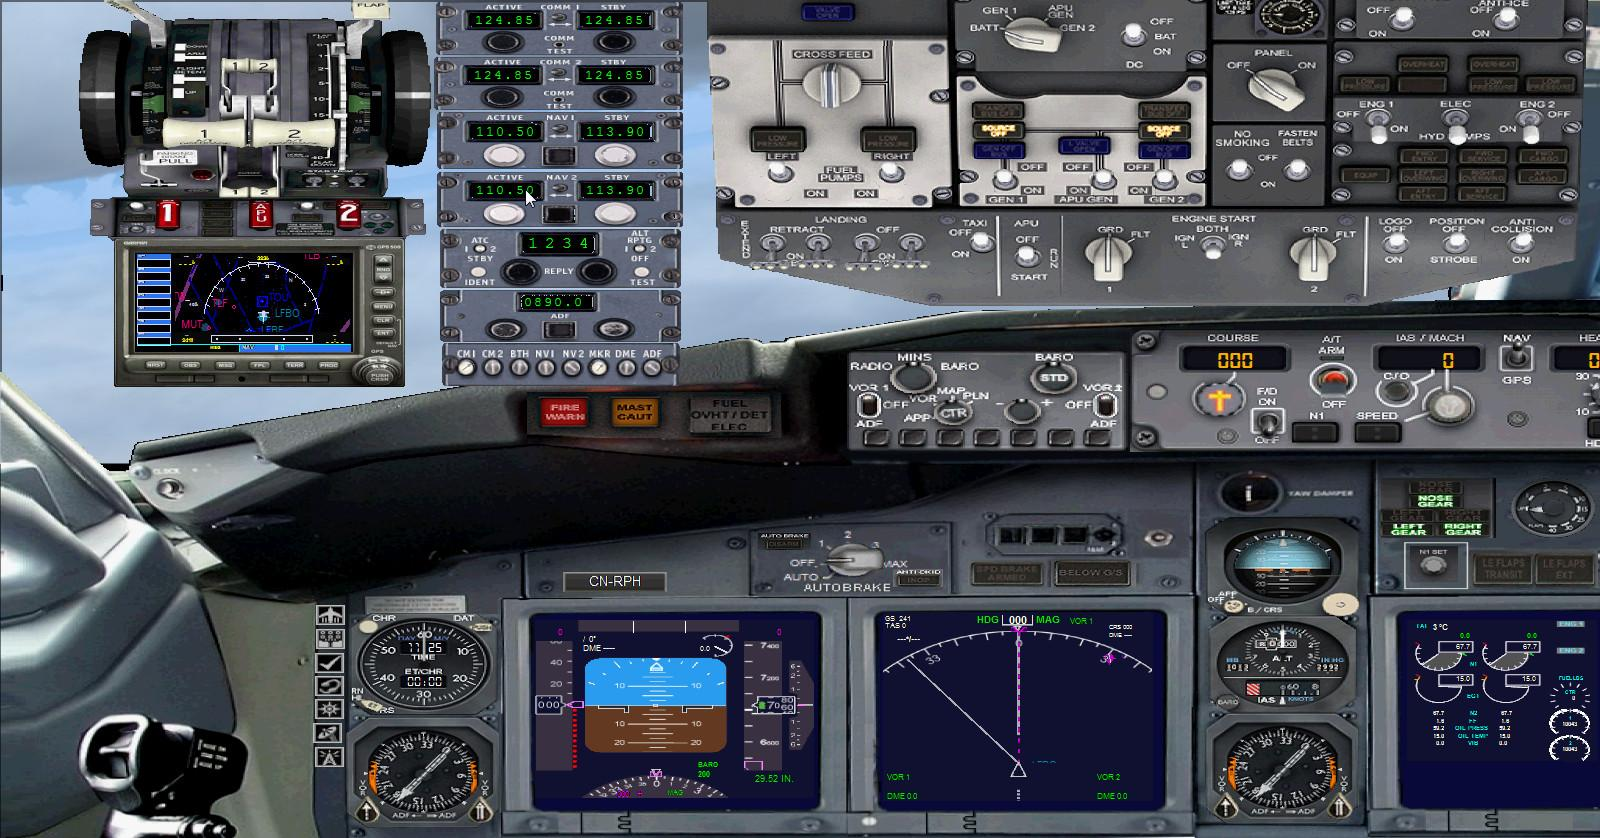 Painel Boeing 737-400